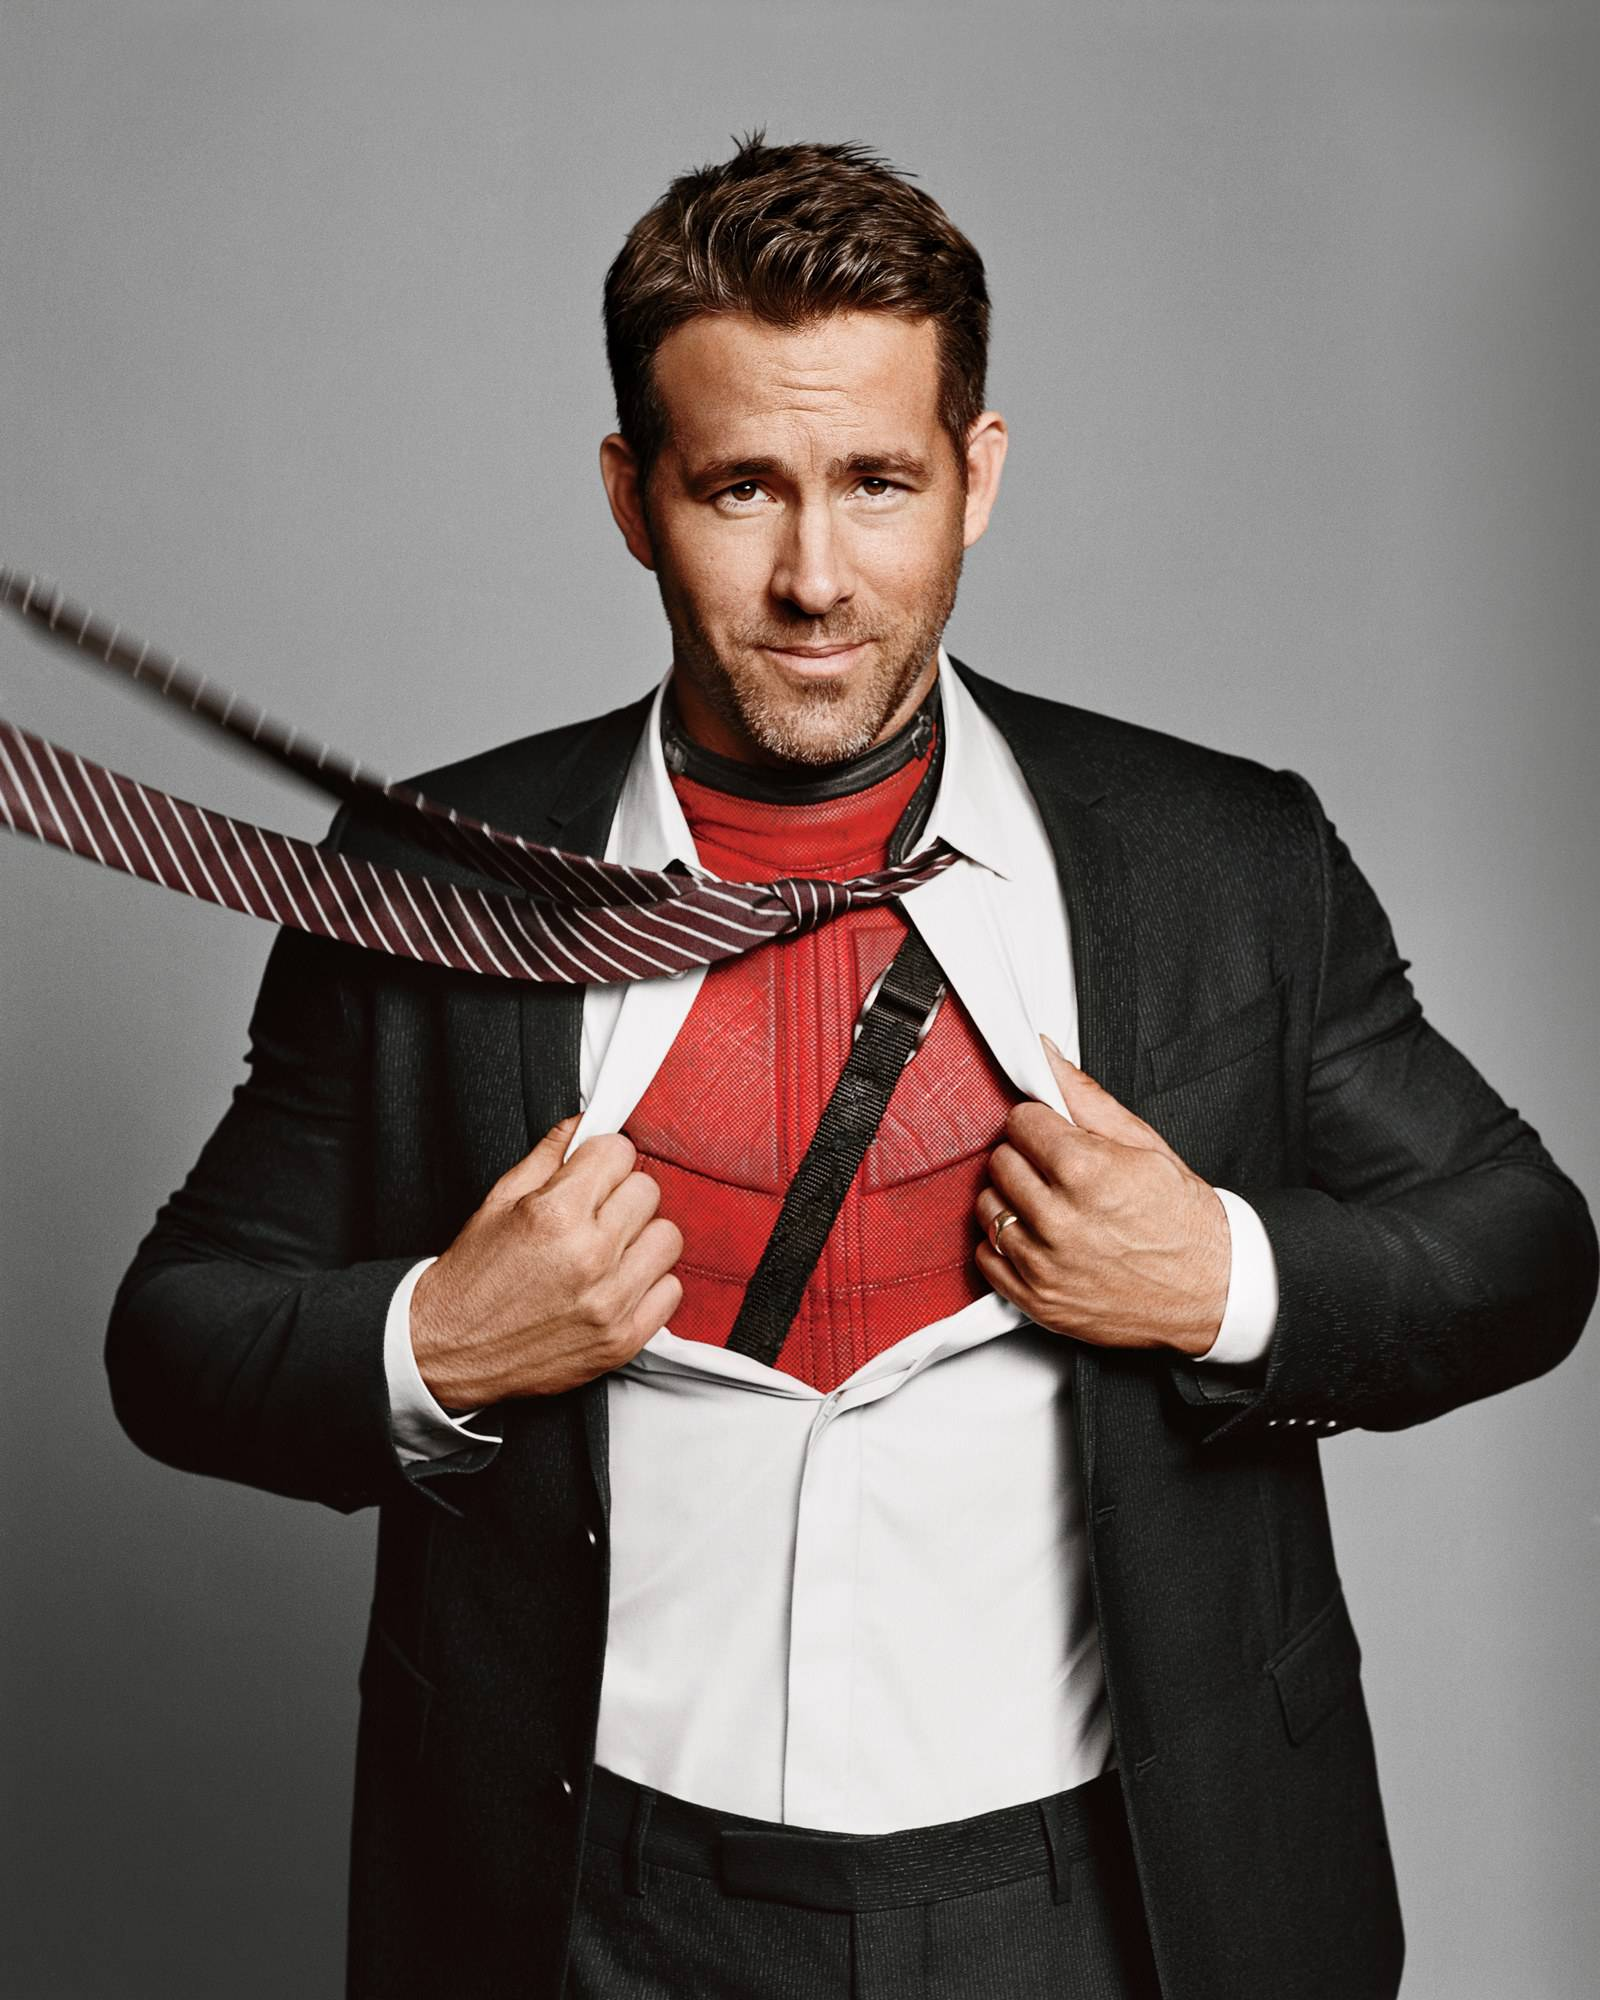 da giardiniere a stella di Hollywood: scopri i segreti di Ryan Reynolds